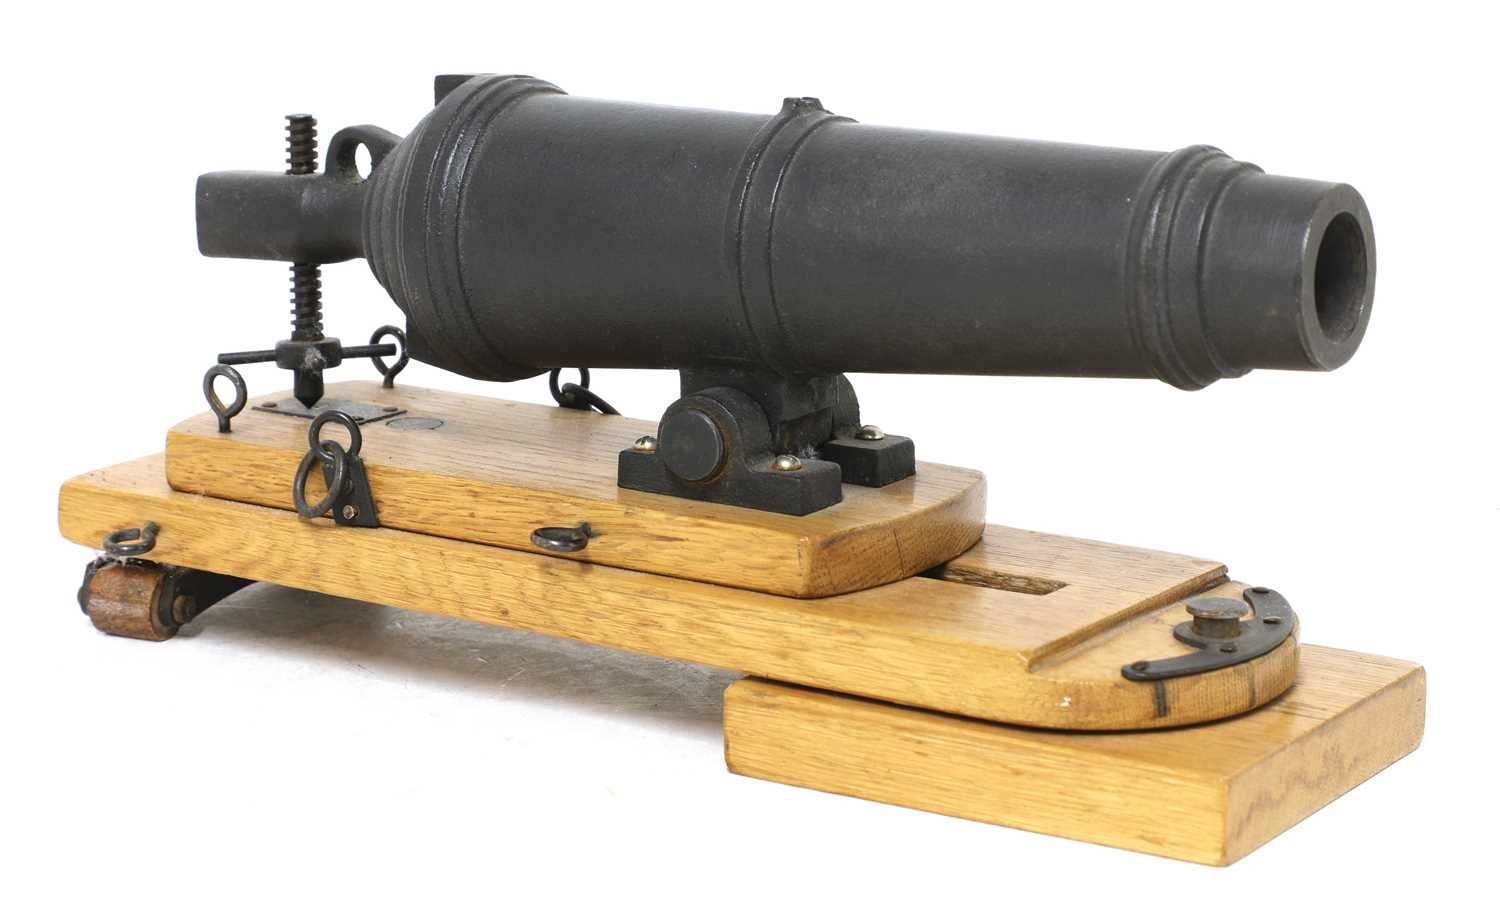 A model of a late 18th century naval carronade,